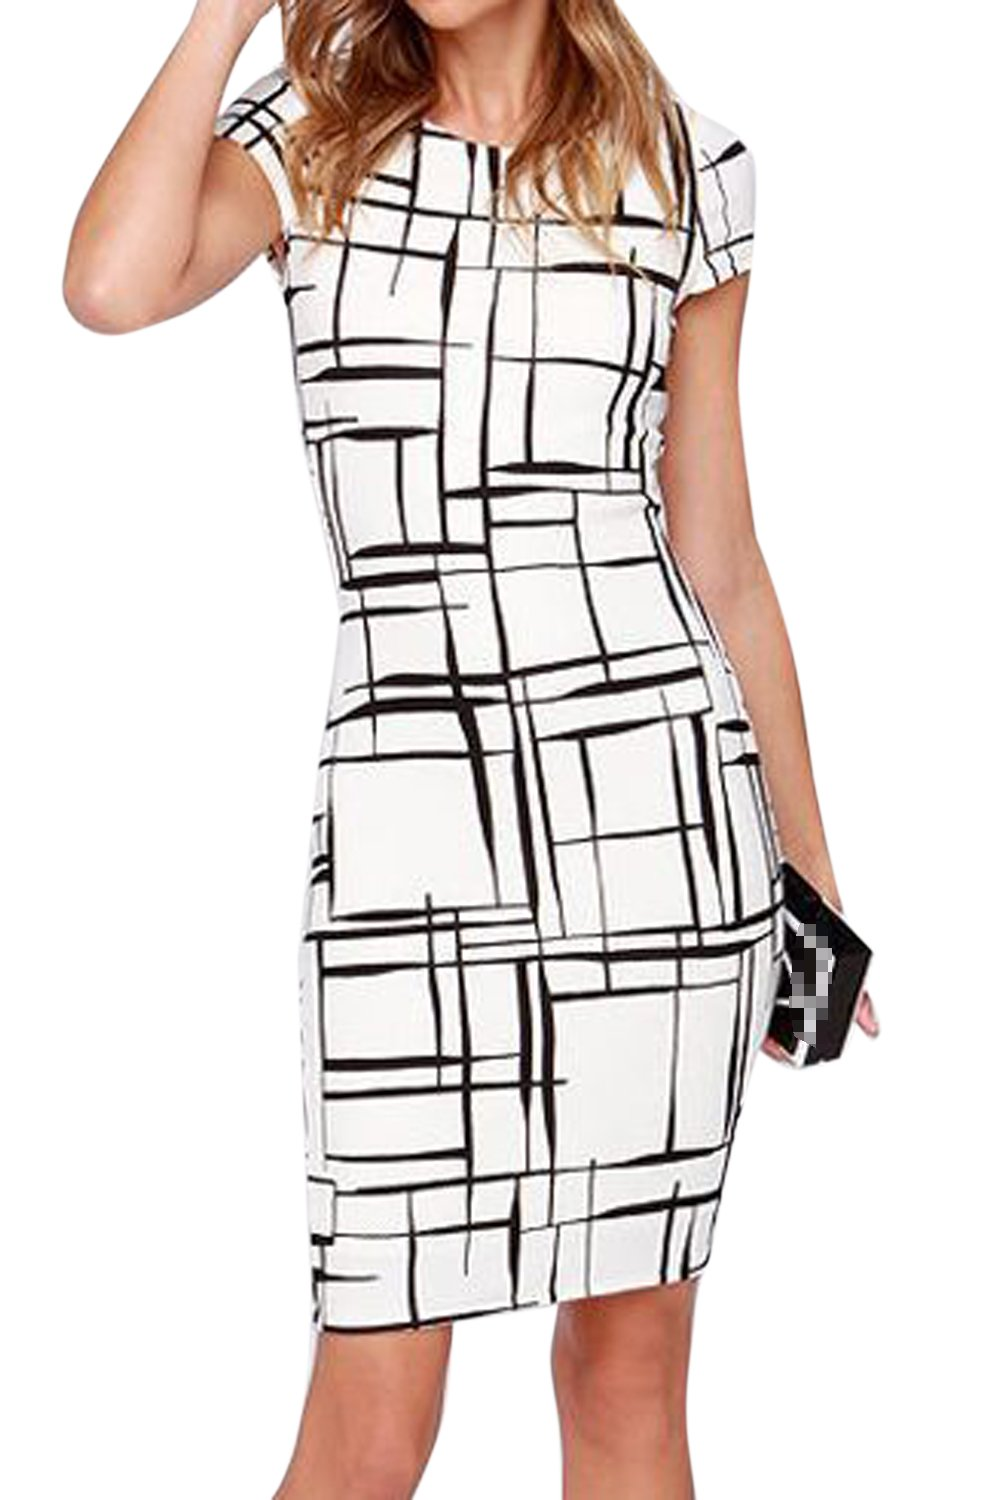 Vepodrau Women Bodycon Dress Short Sleeve Office Midi Dresses CACWMG14